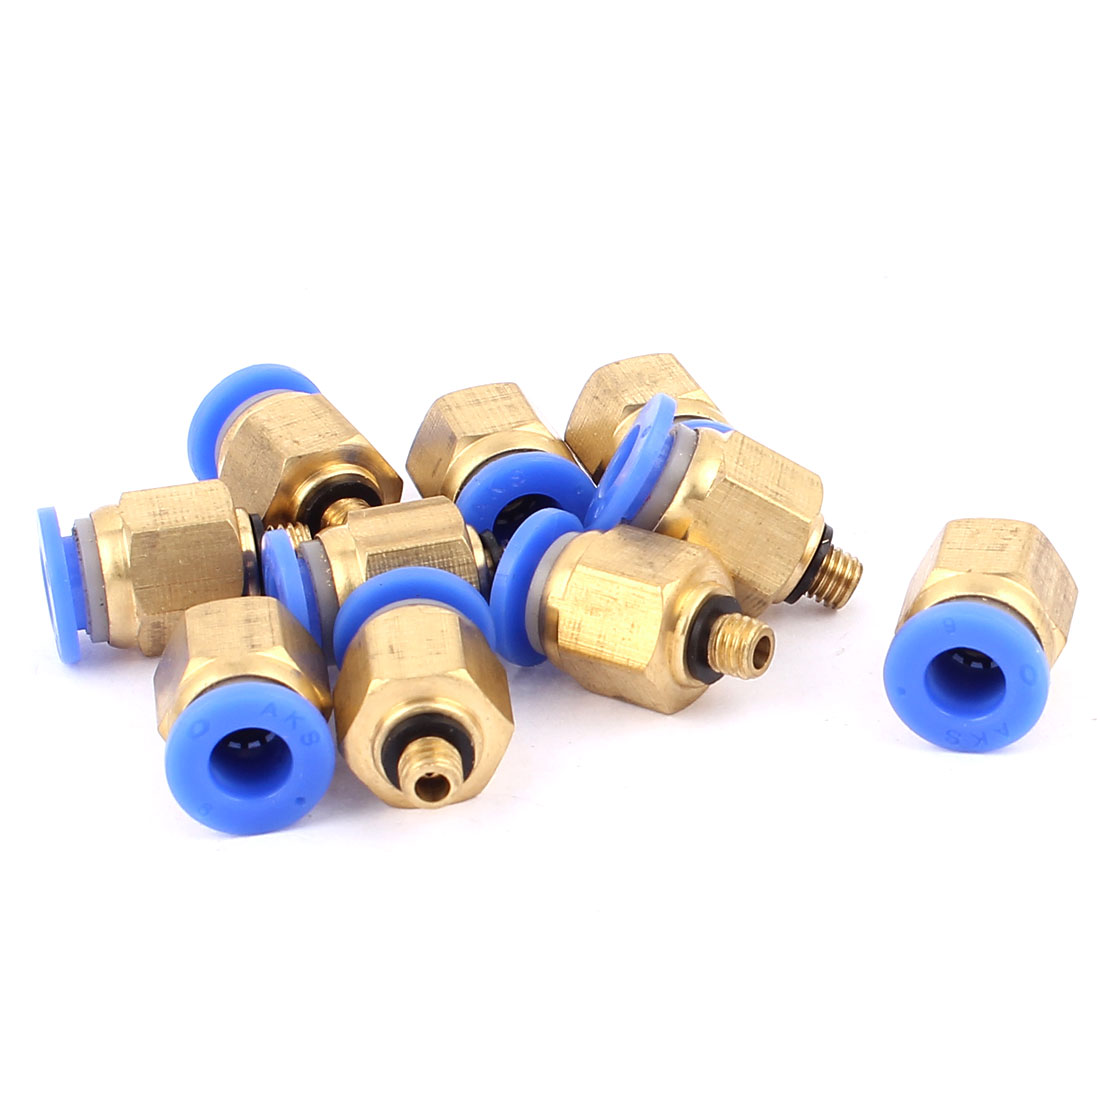 6mm Inner Dia M5 Male Thread Pneumatic Straight Quick Connector Fittings 10PCS